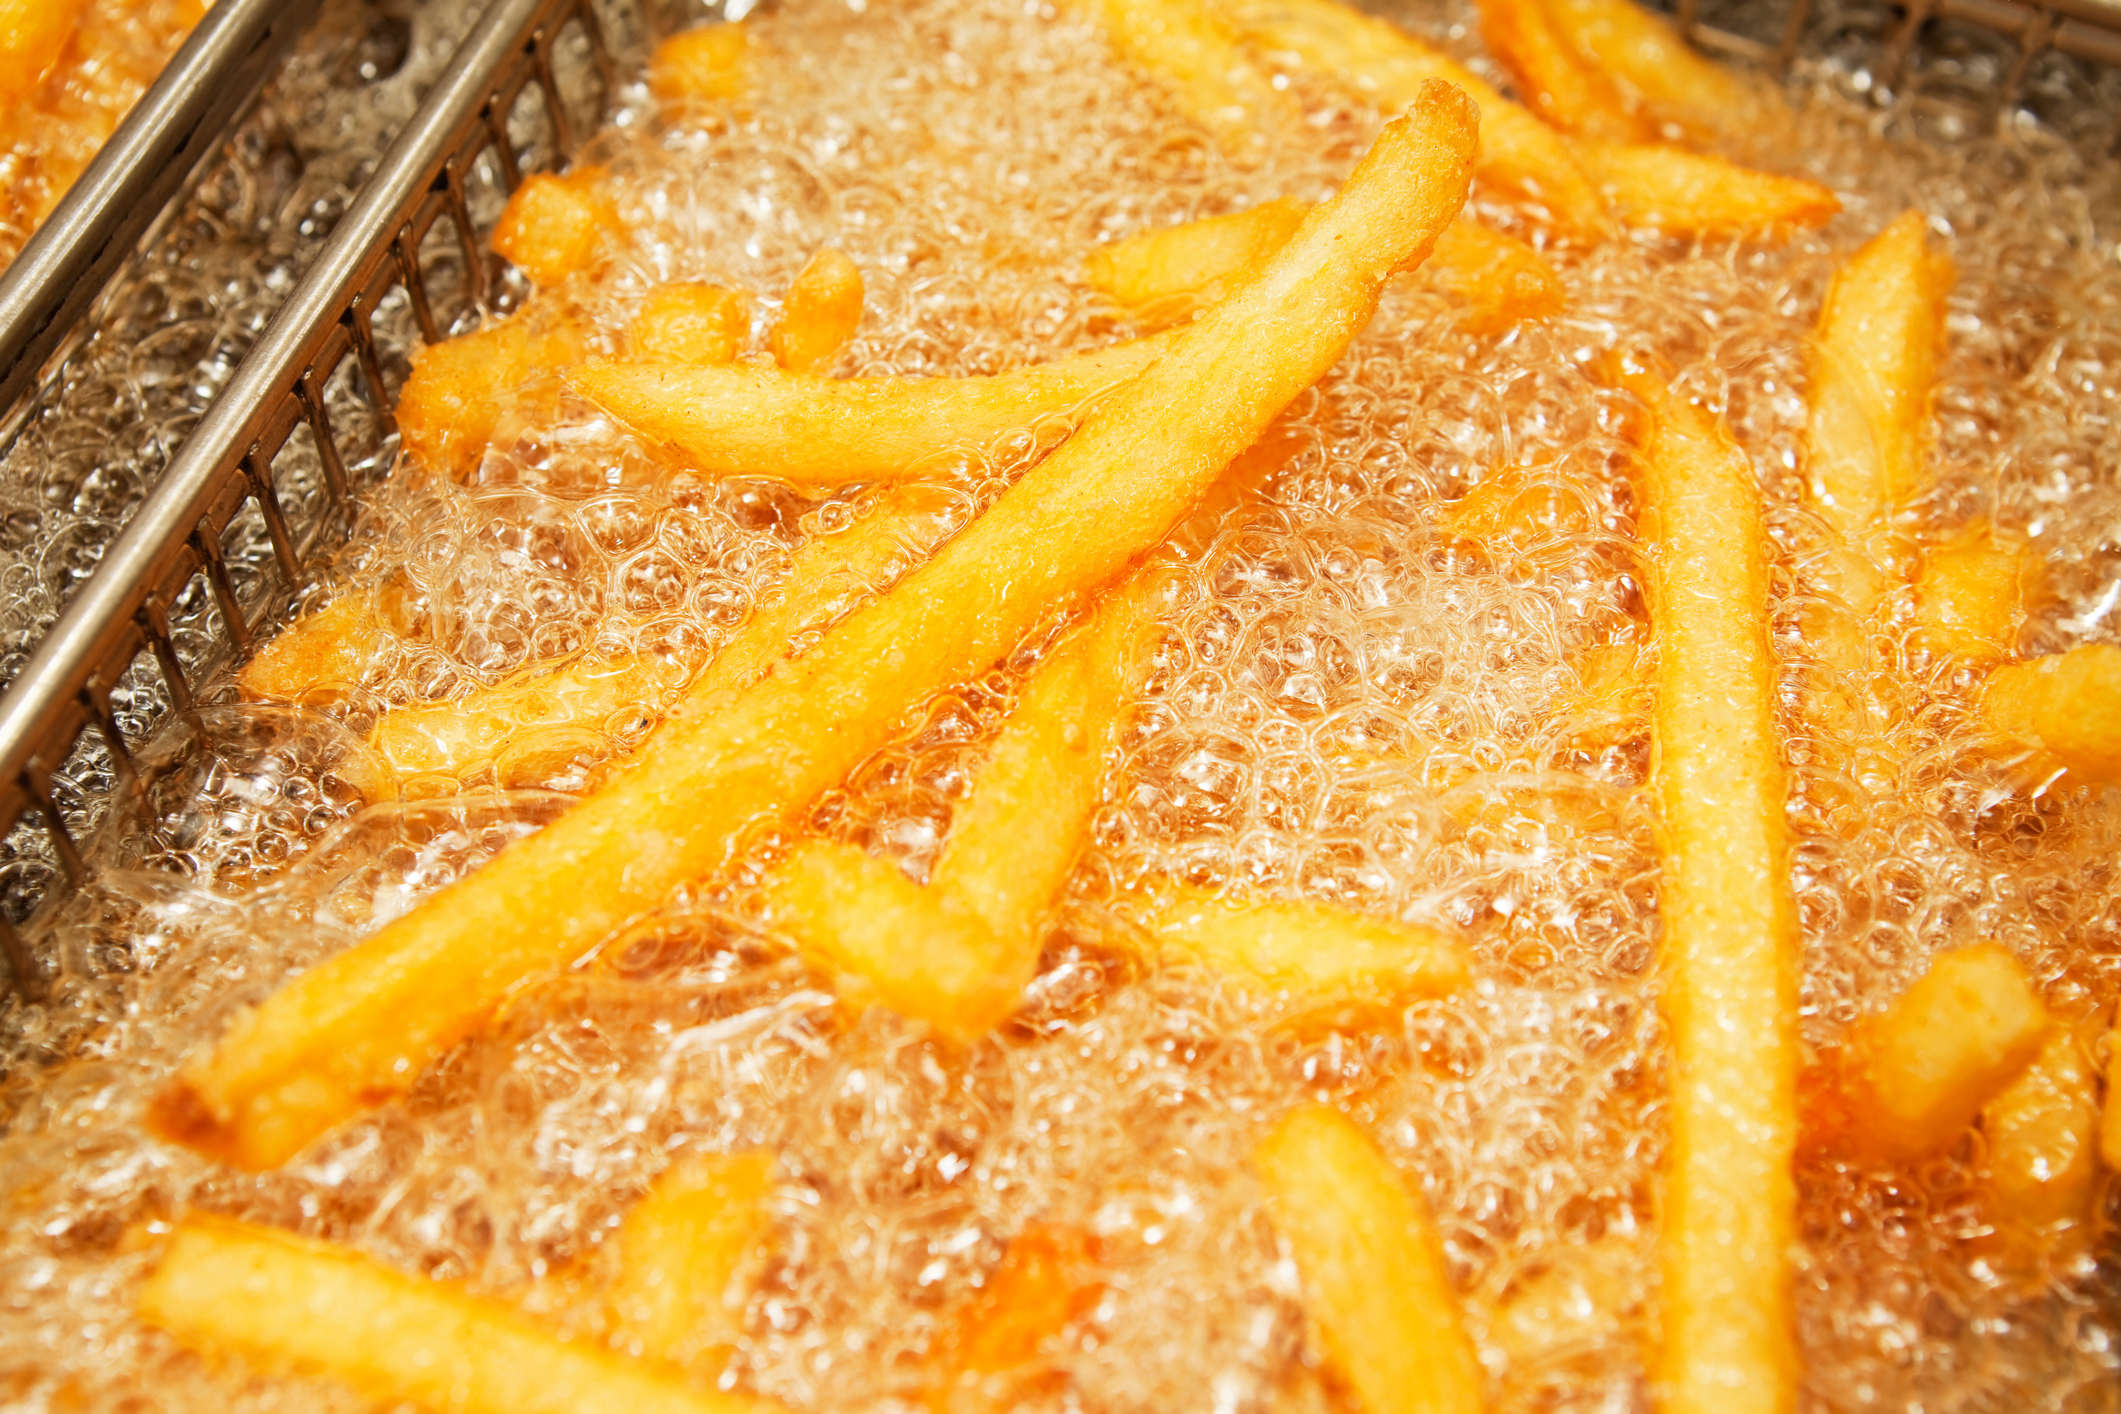 Fries In Cooking Oil